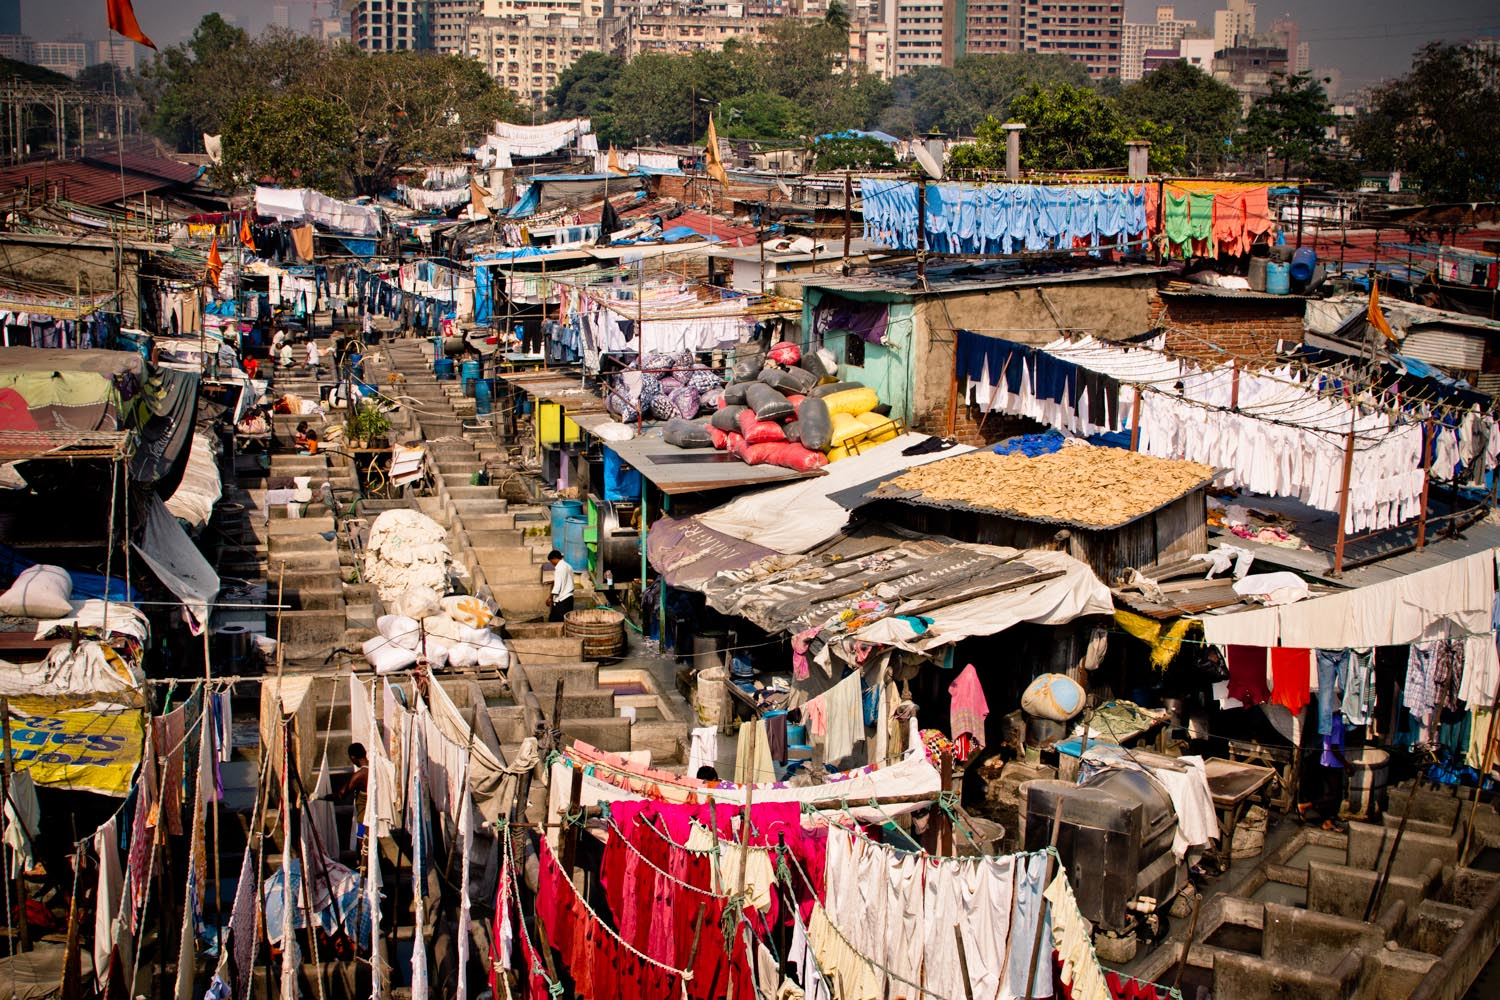 Dhobi Ghat - open air laundry